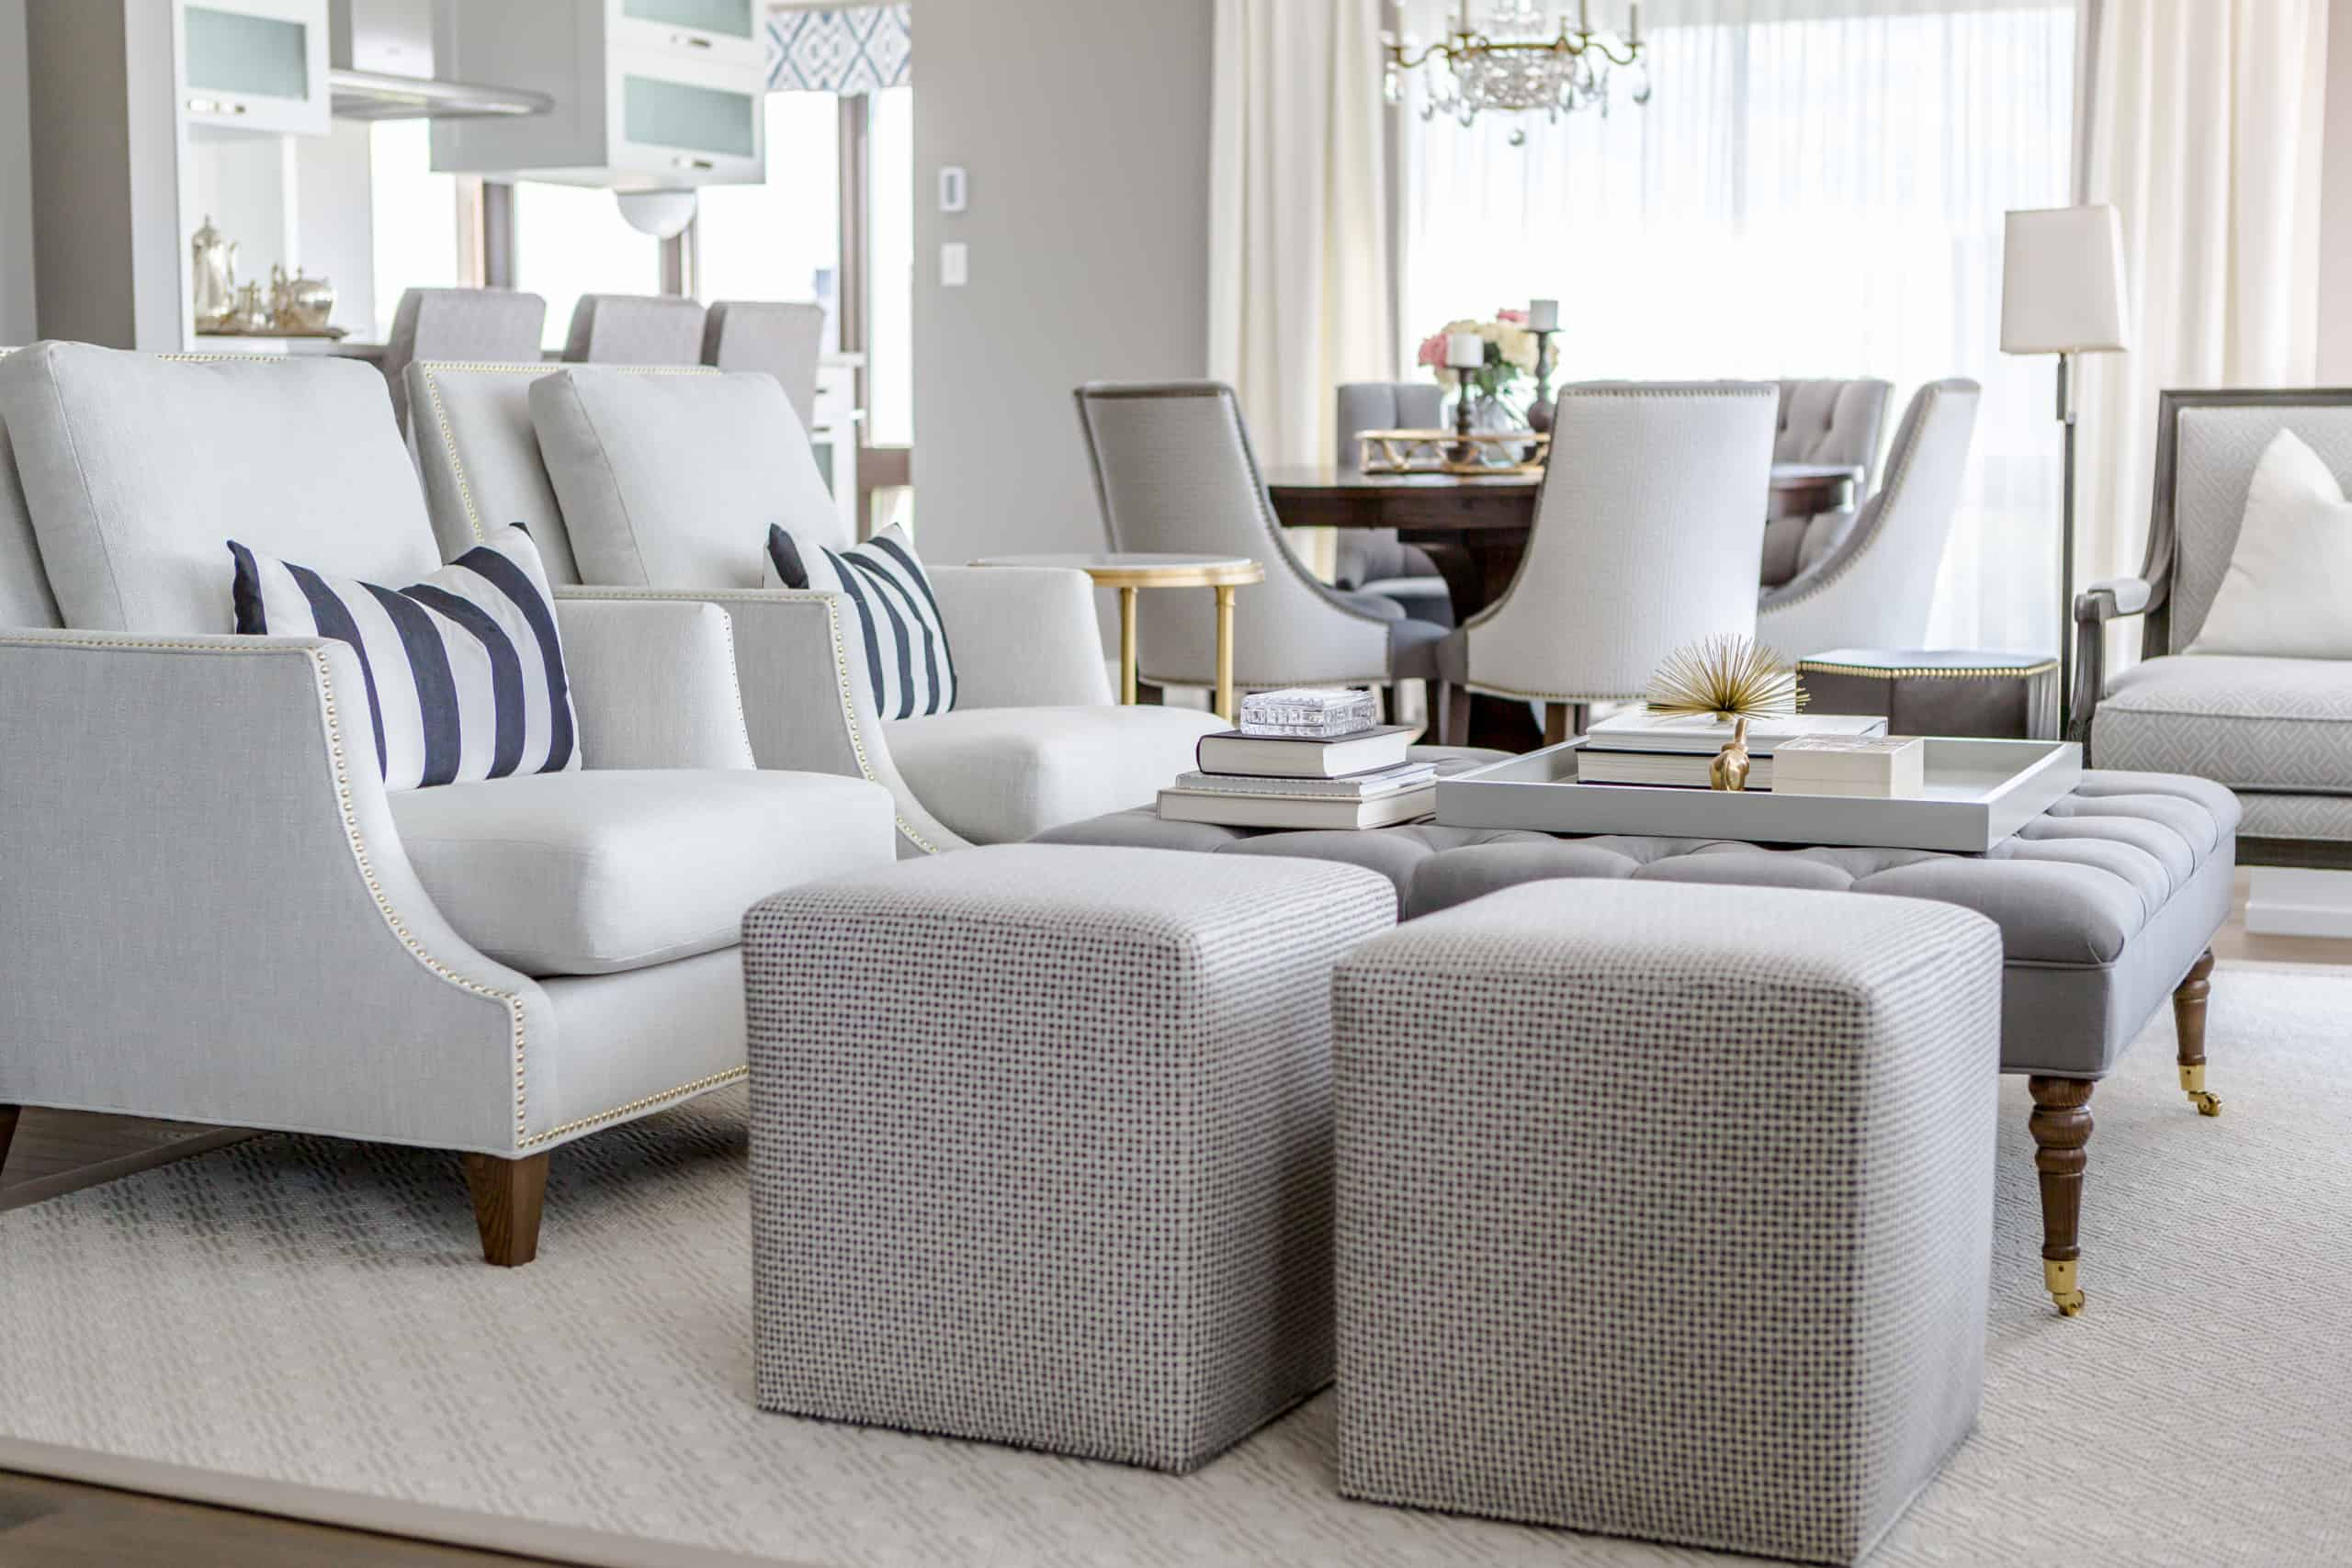 Modern living room with a focus on two small gray stools next to the coffee table